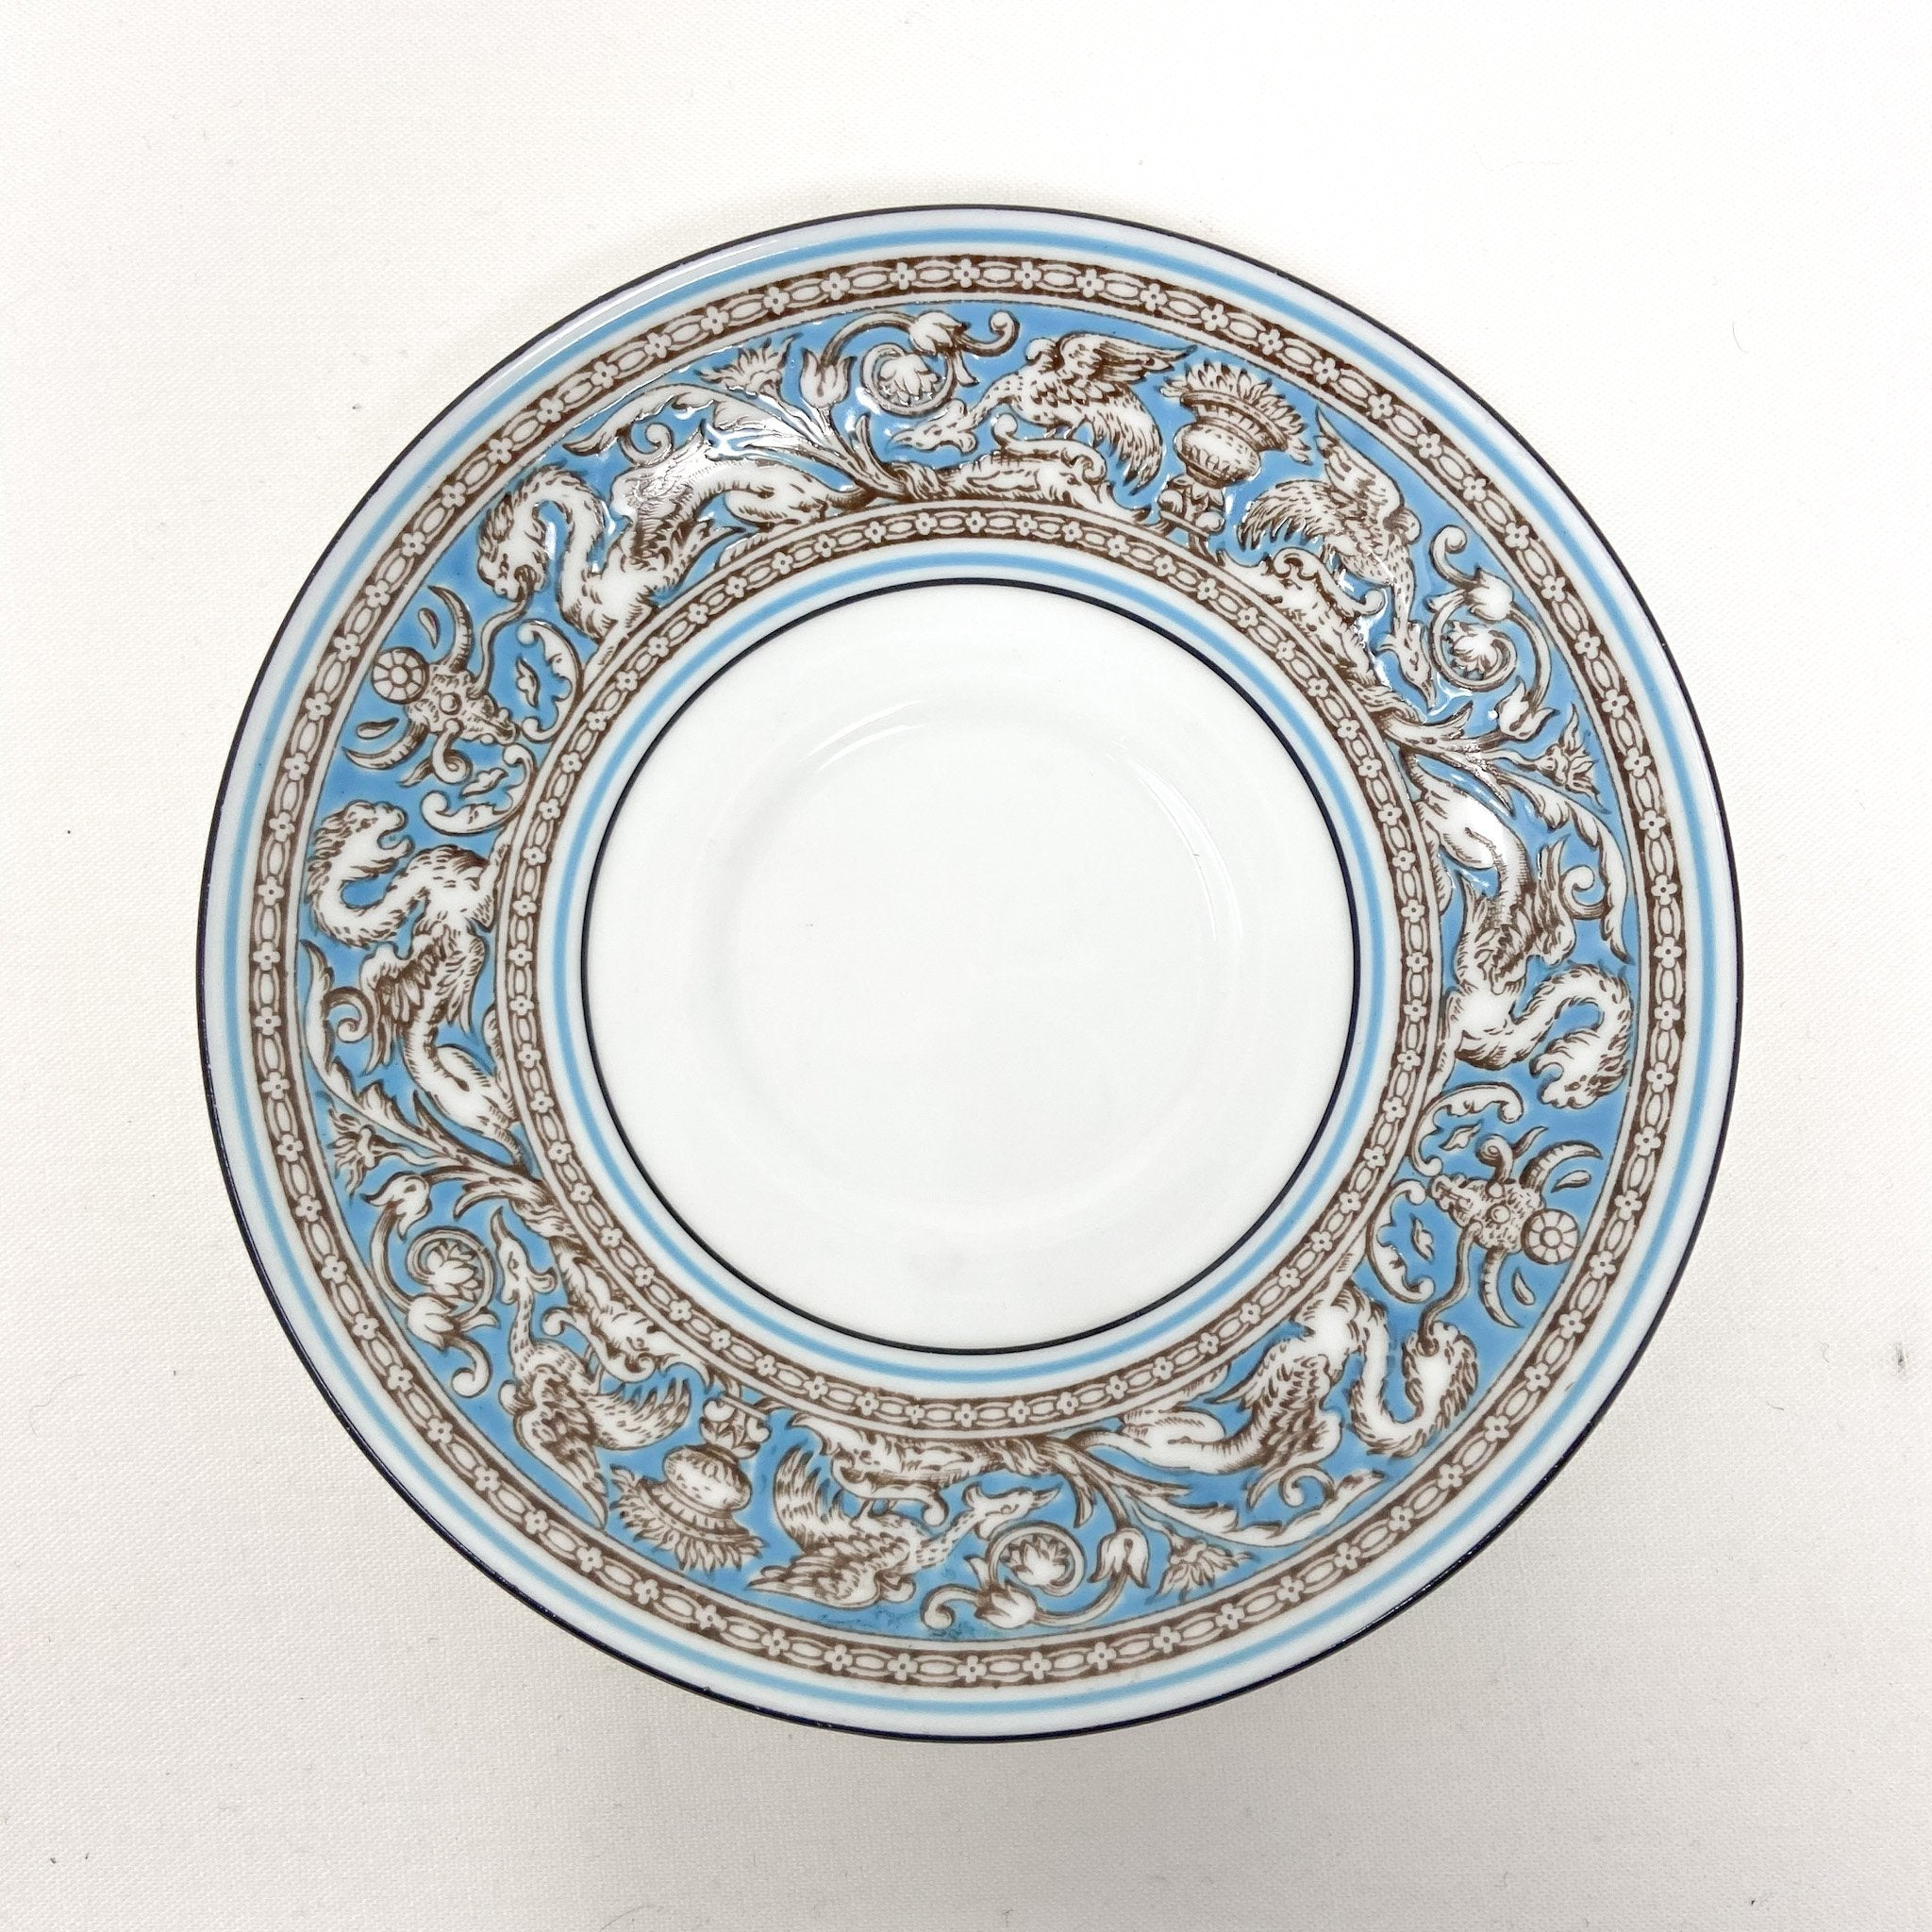 Wedgwood Florentine | Saucer | Wedgwood - The Brooklyn Teacup